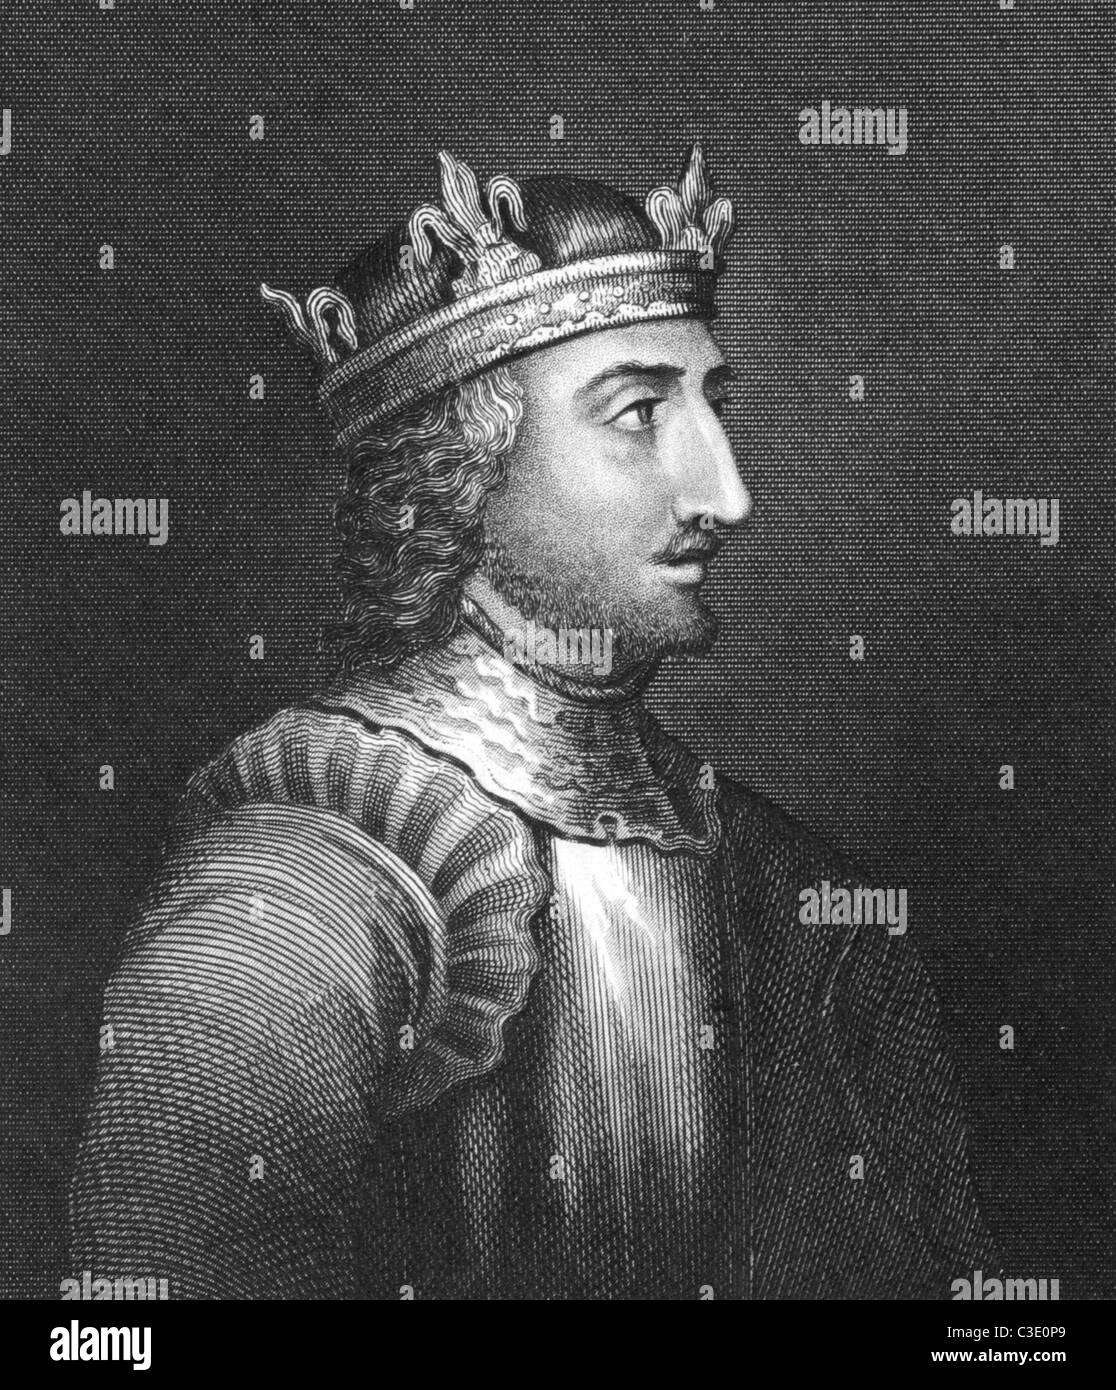 King Stephen (1096-1154) on engraving from 1830. Grandson of William the Conqueror and last Norman King of England. - Stock Image